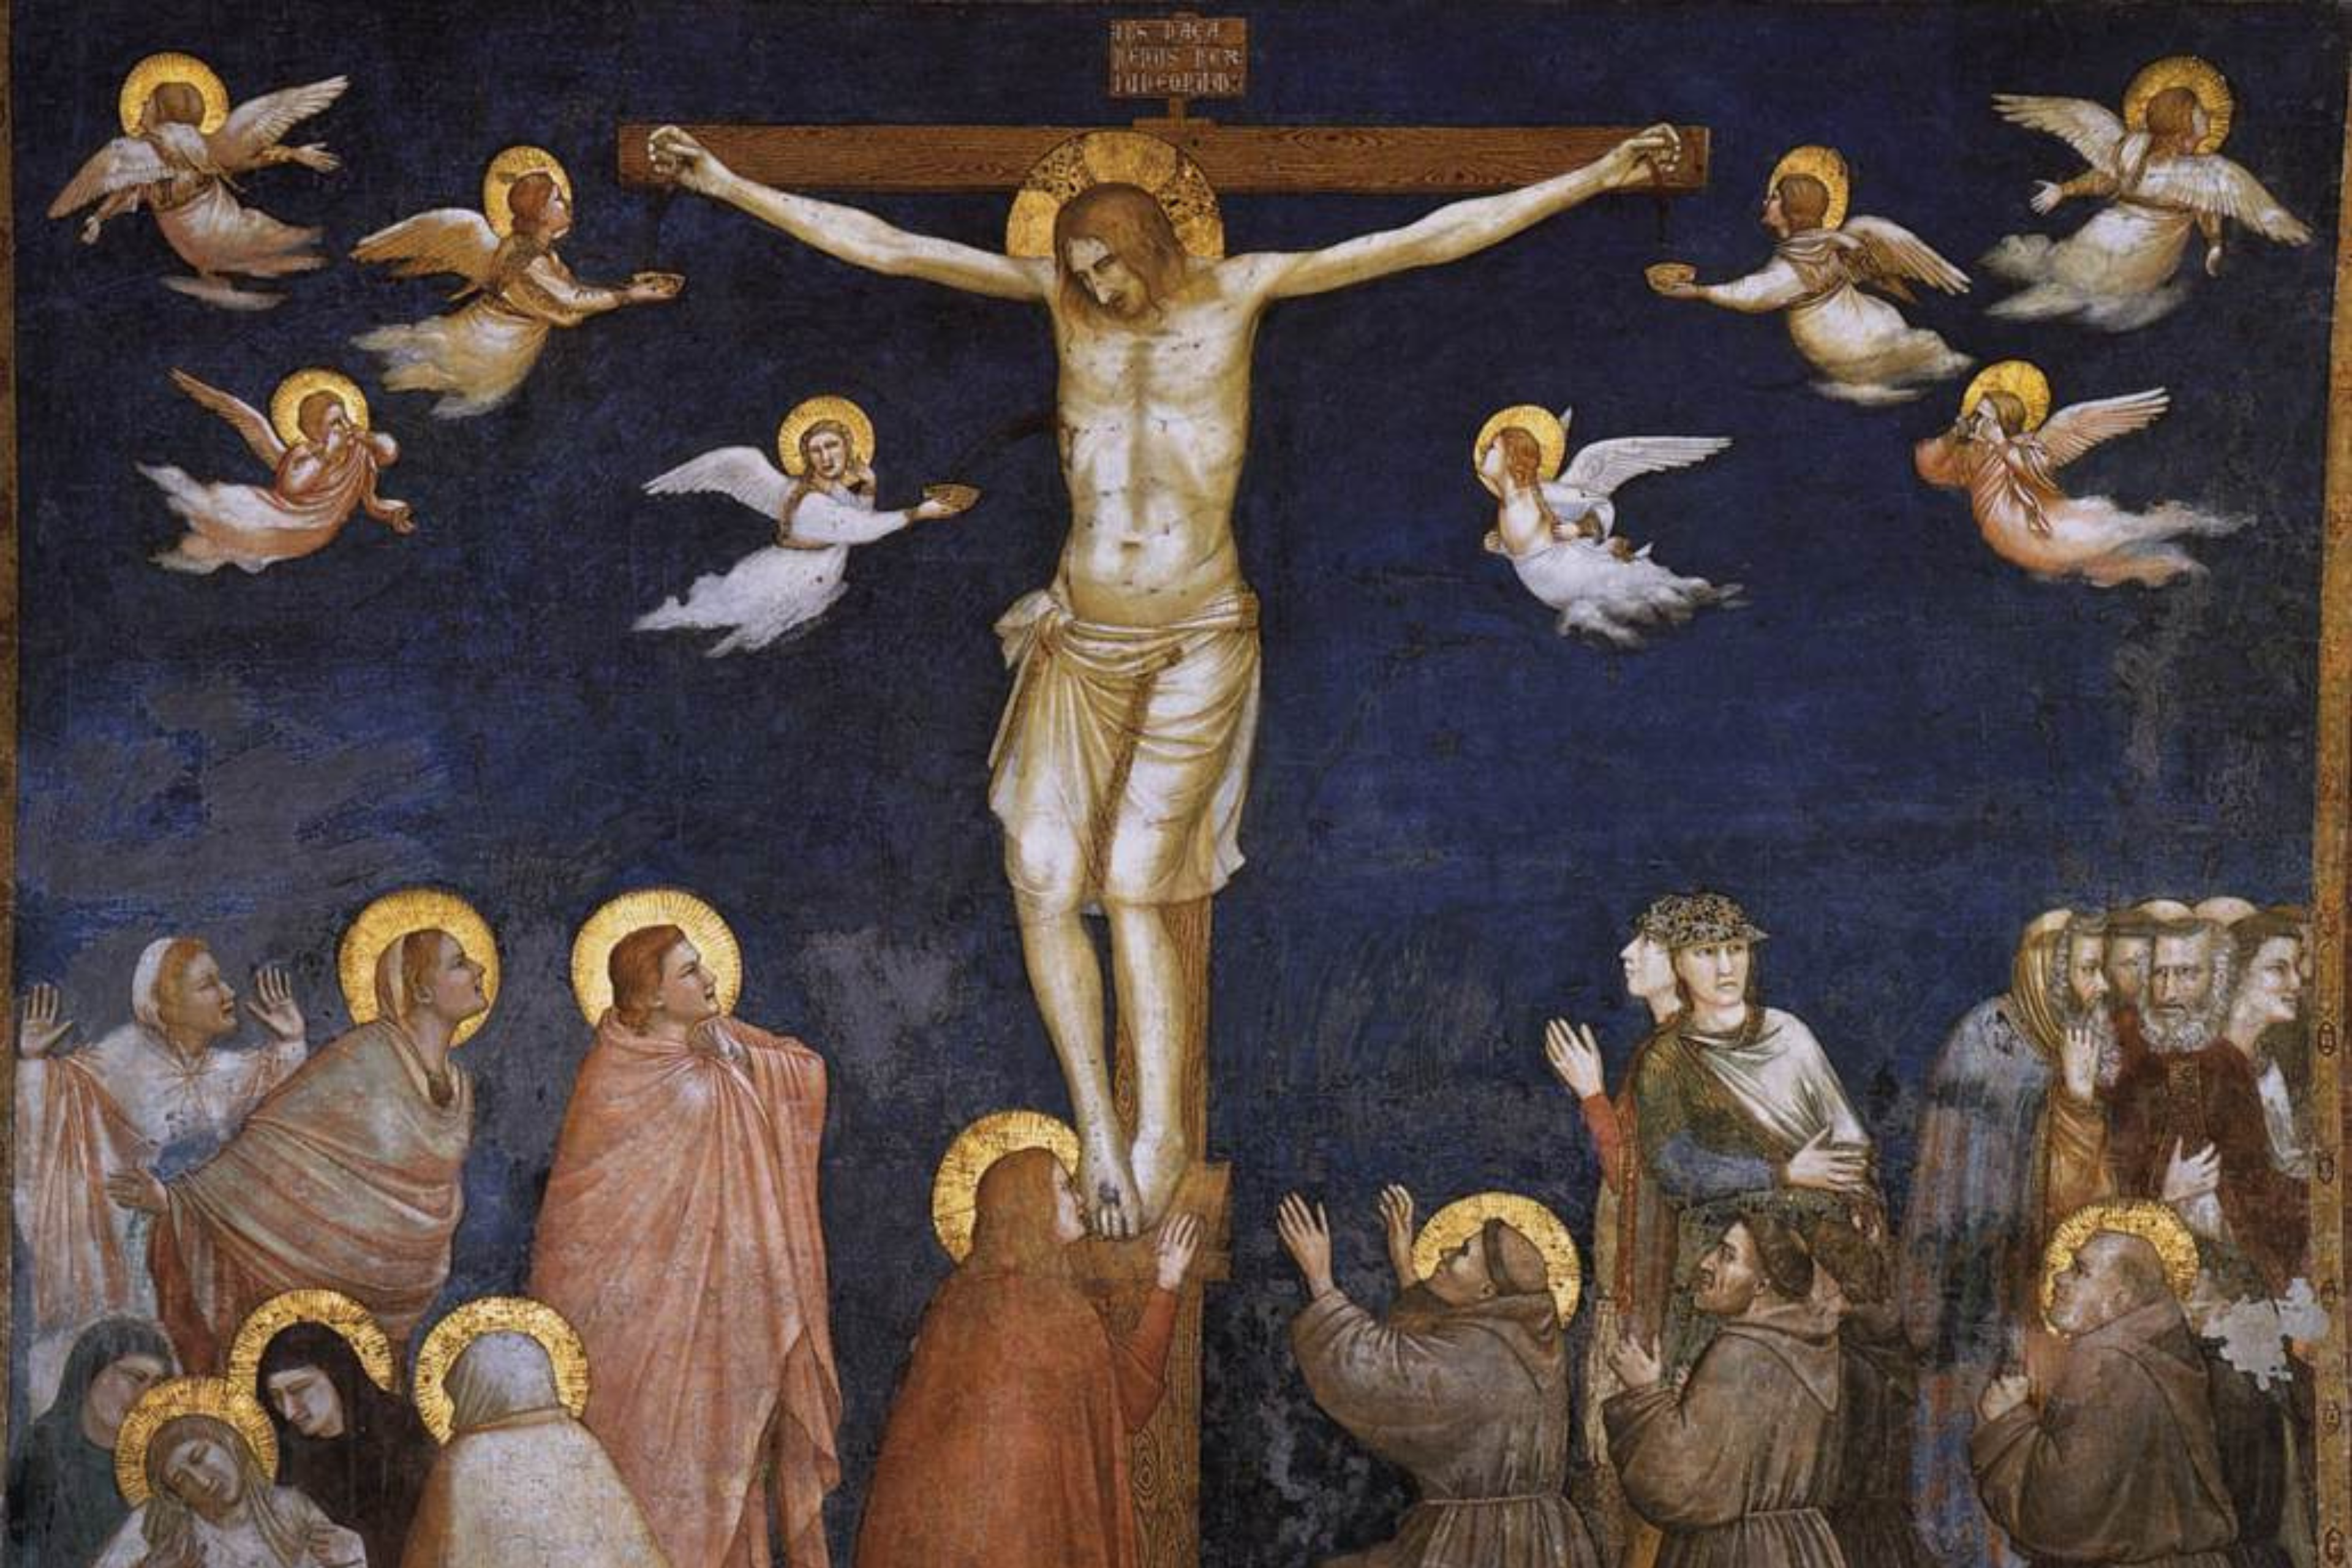 Painting of the Crucifixion by Giotti